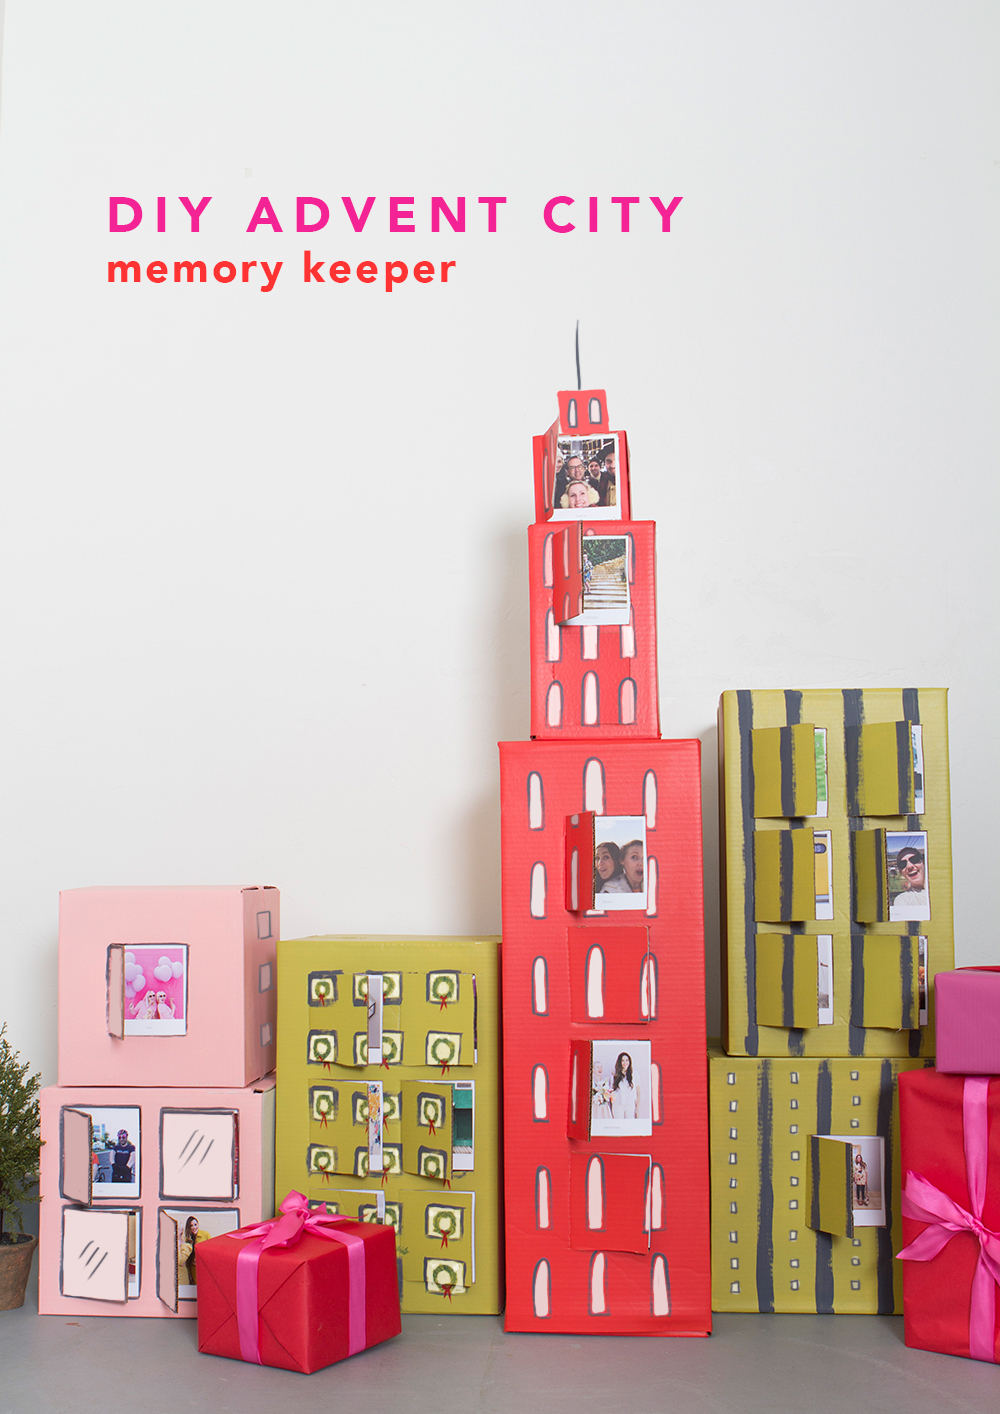 advent-city-memory-keeper-edited